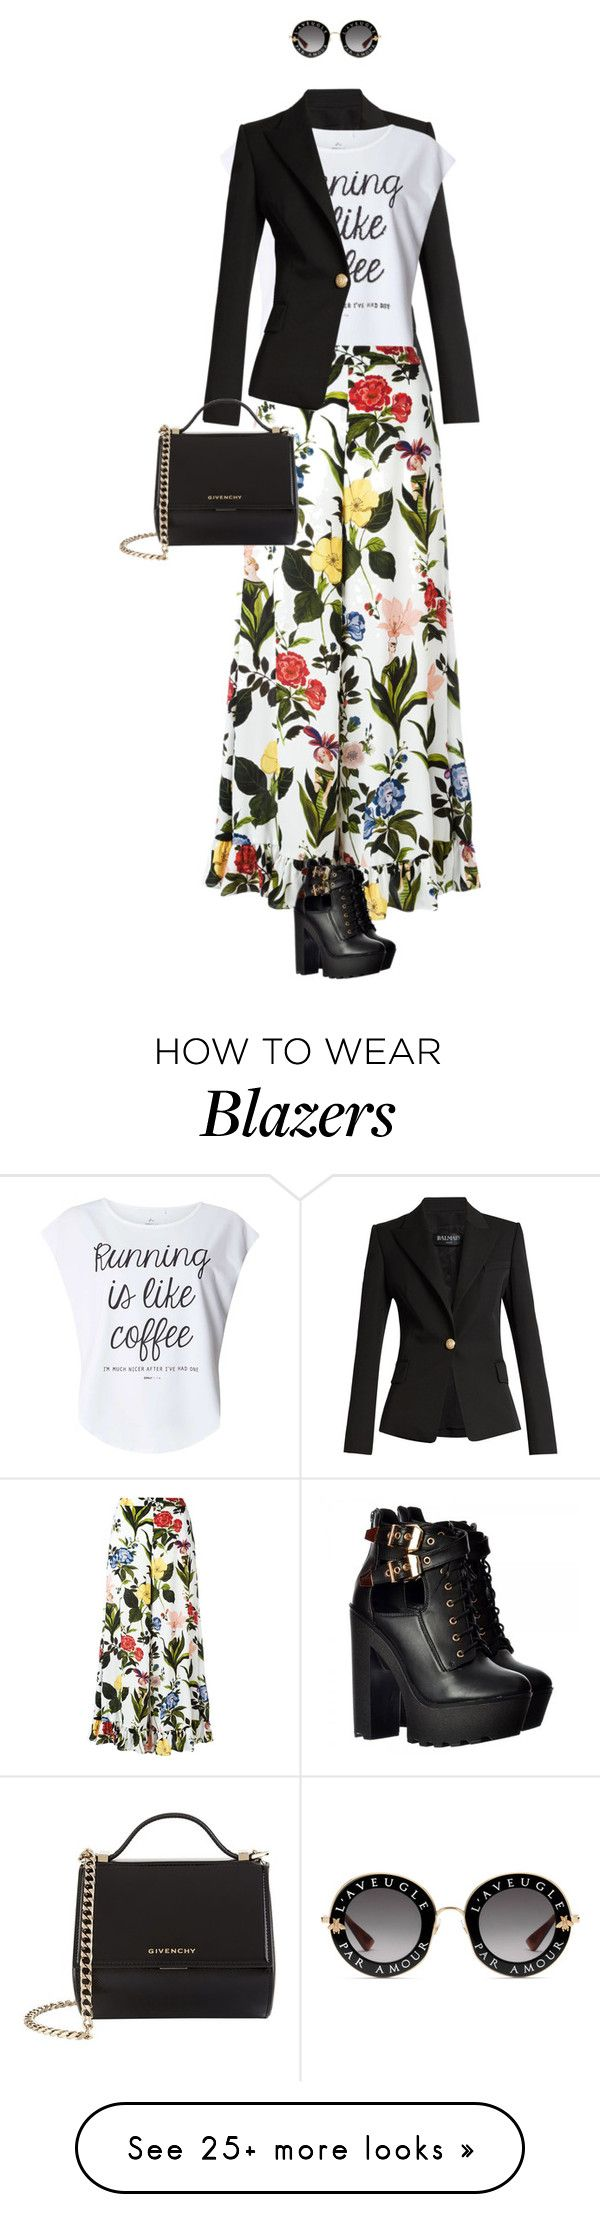 """eva 0676"" by evava-c on Polyvore featuring Balmain, Dorothy Perkins, VIVETTA, Gucci and Givenchy"